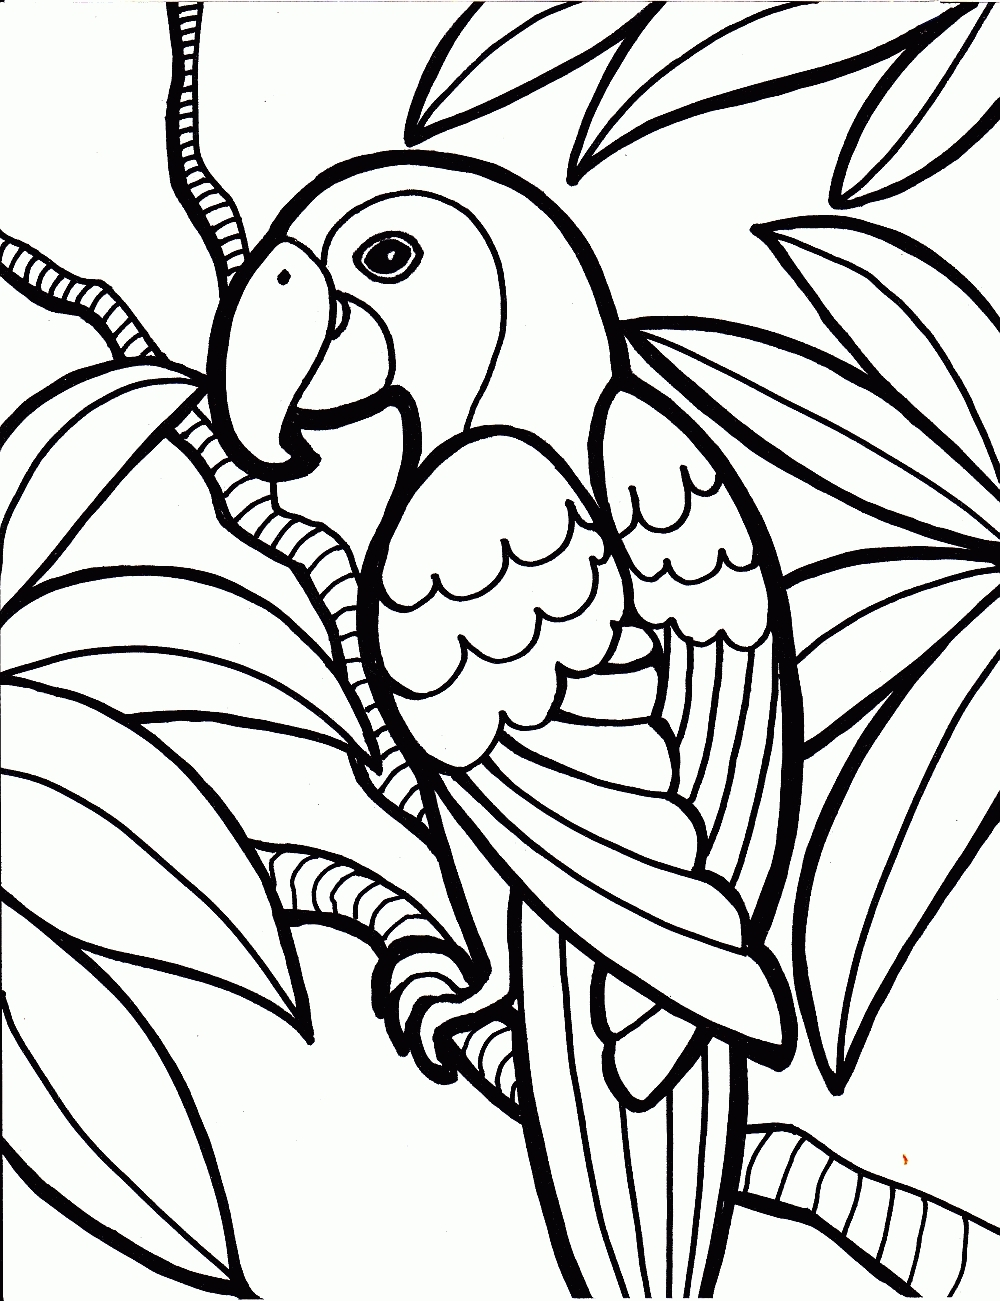 Crayola Coloring Pages At Getdrawings Free Download